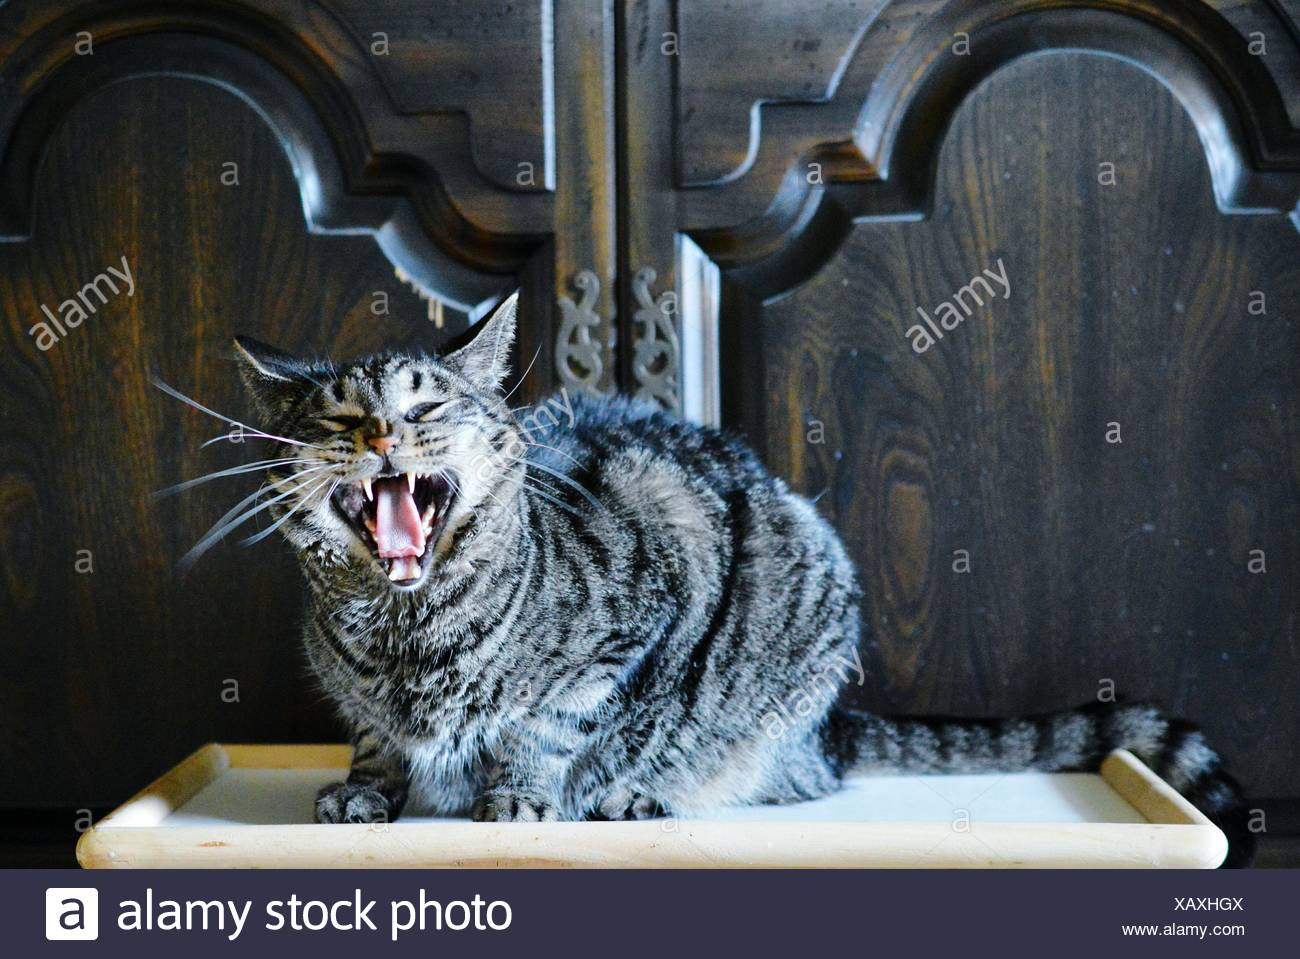 Portrait Of Angry Cat On Table At Home - Stock Image